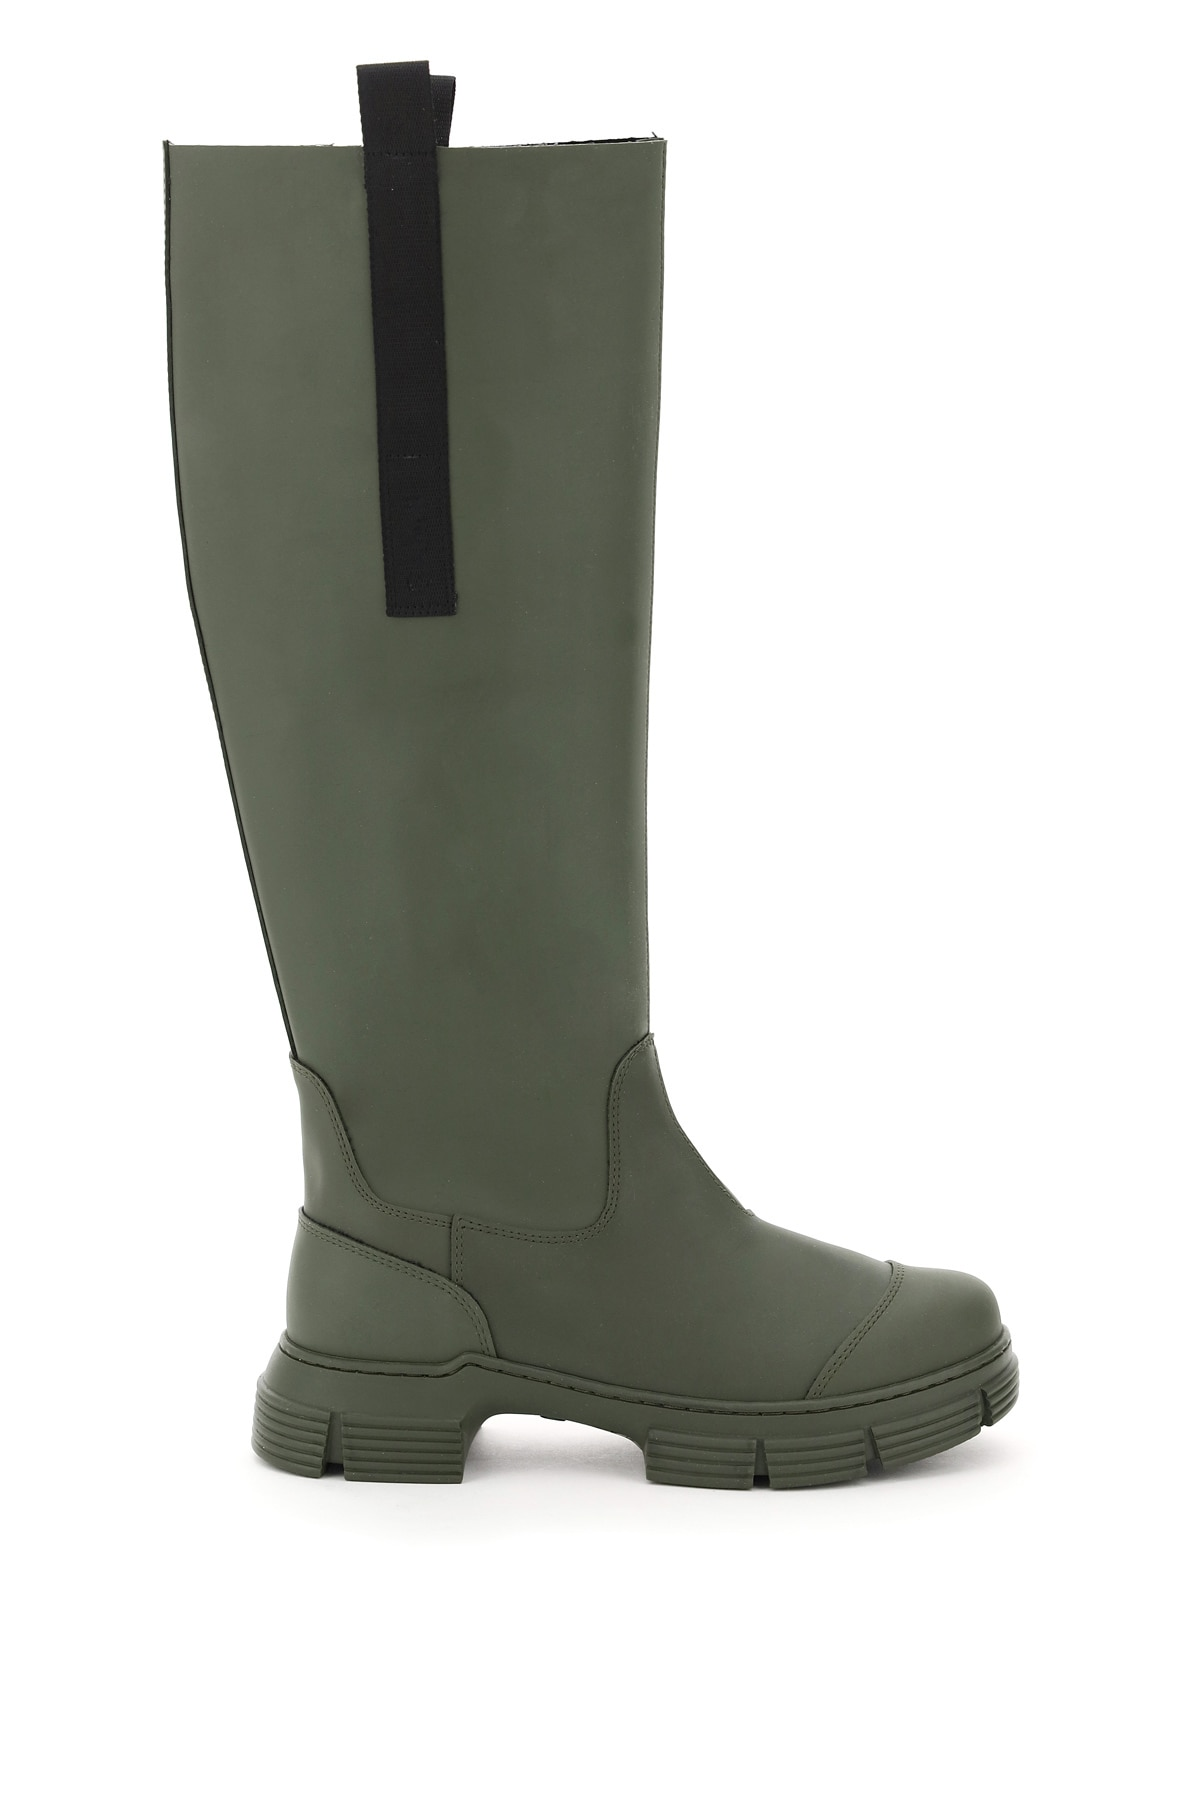 Ganni Recycled Rubber Boots 36 Green, Black